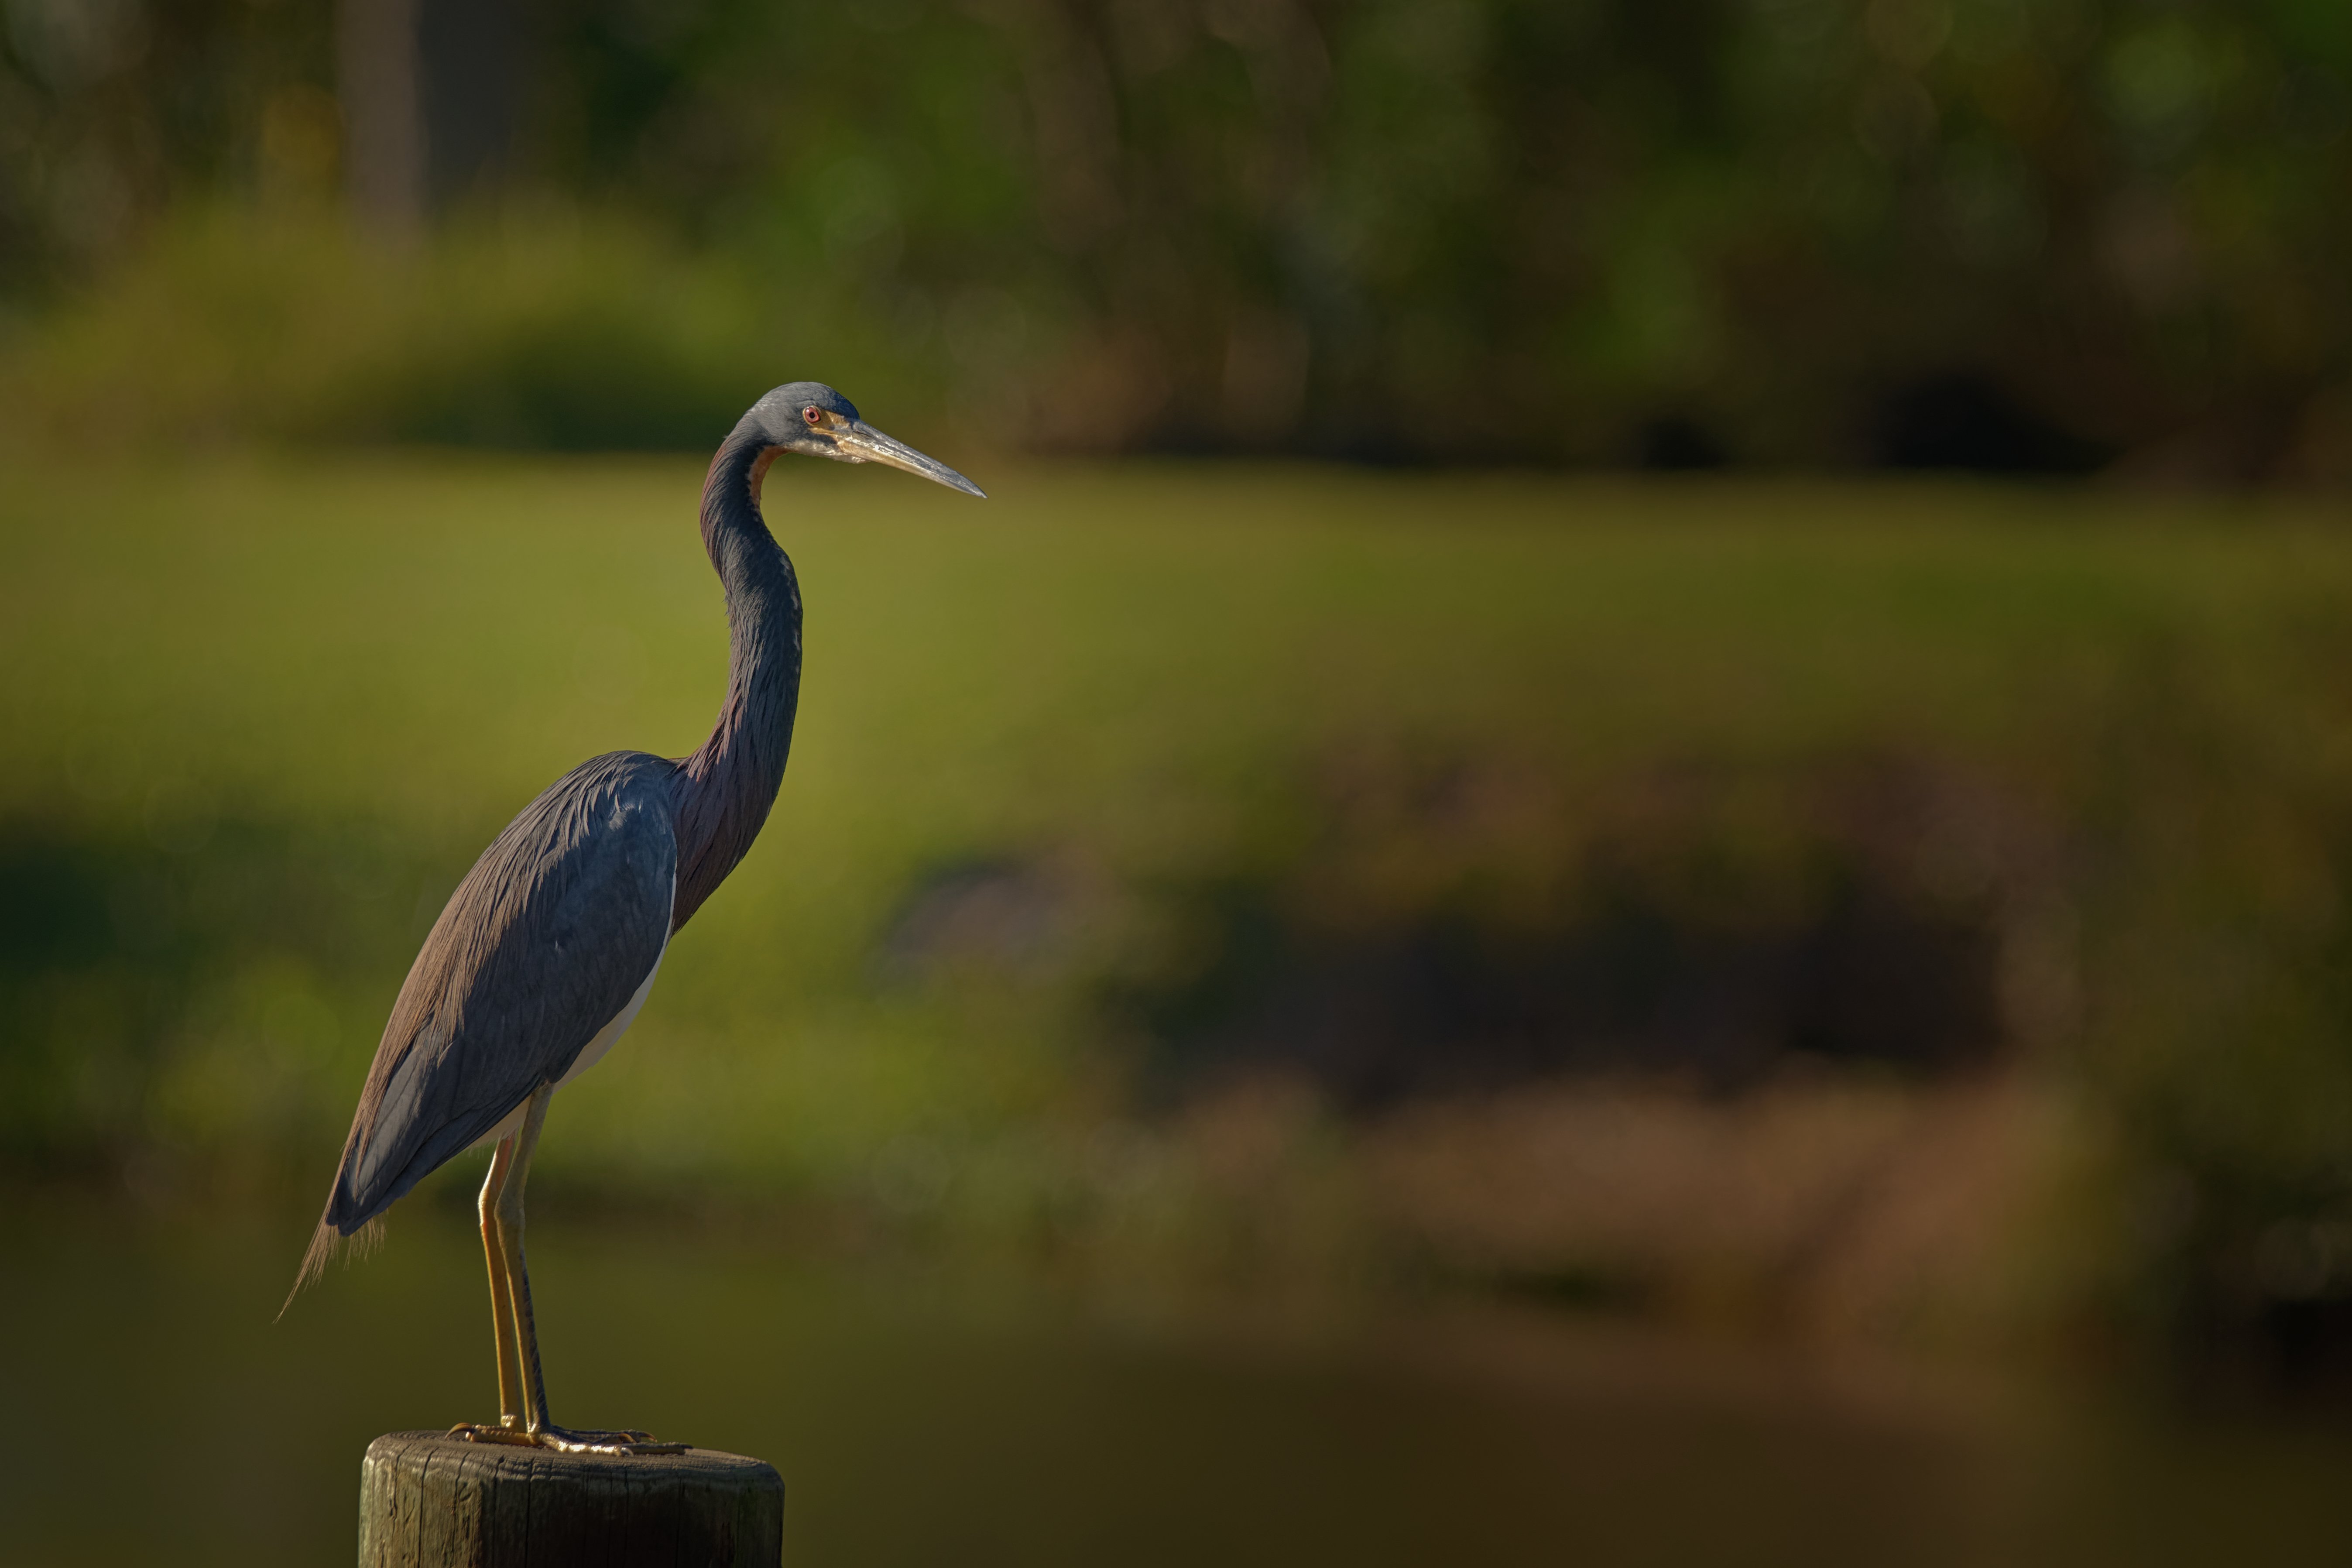 Tricolored Heron on a Dock - 0691